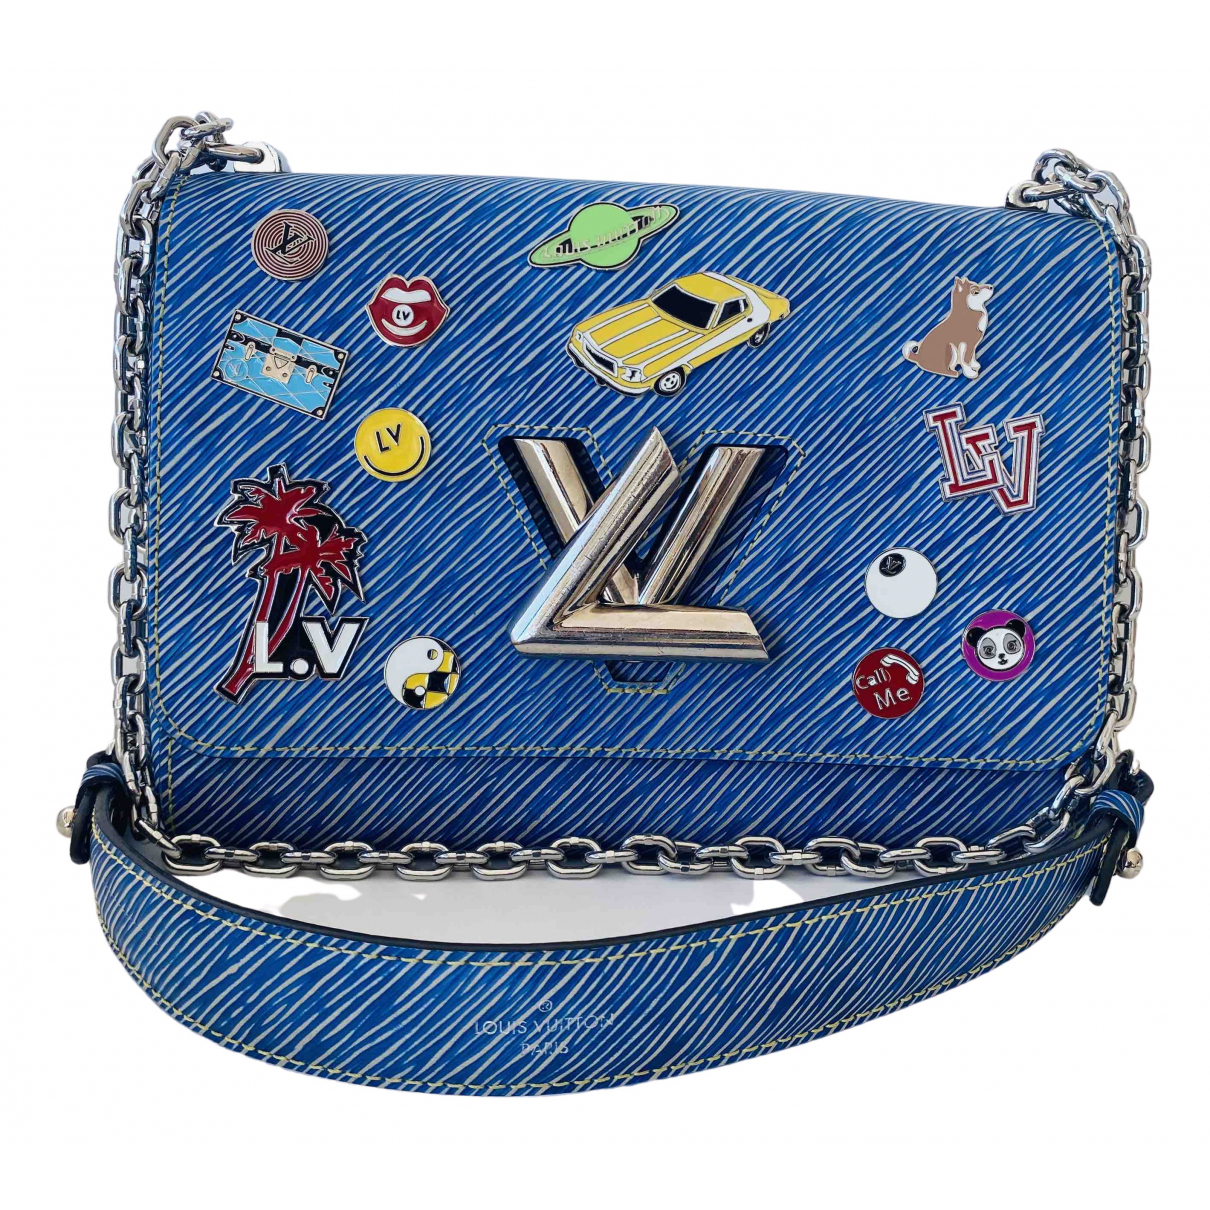 Louis Vuitton Twist Blue Leather handbag for Women \N